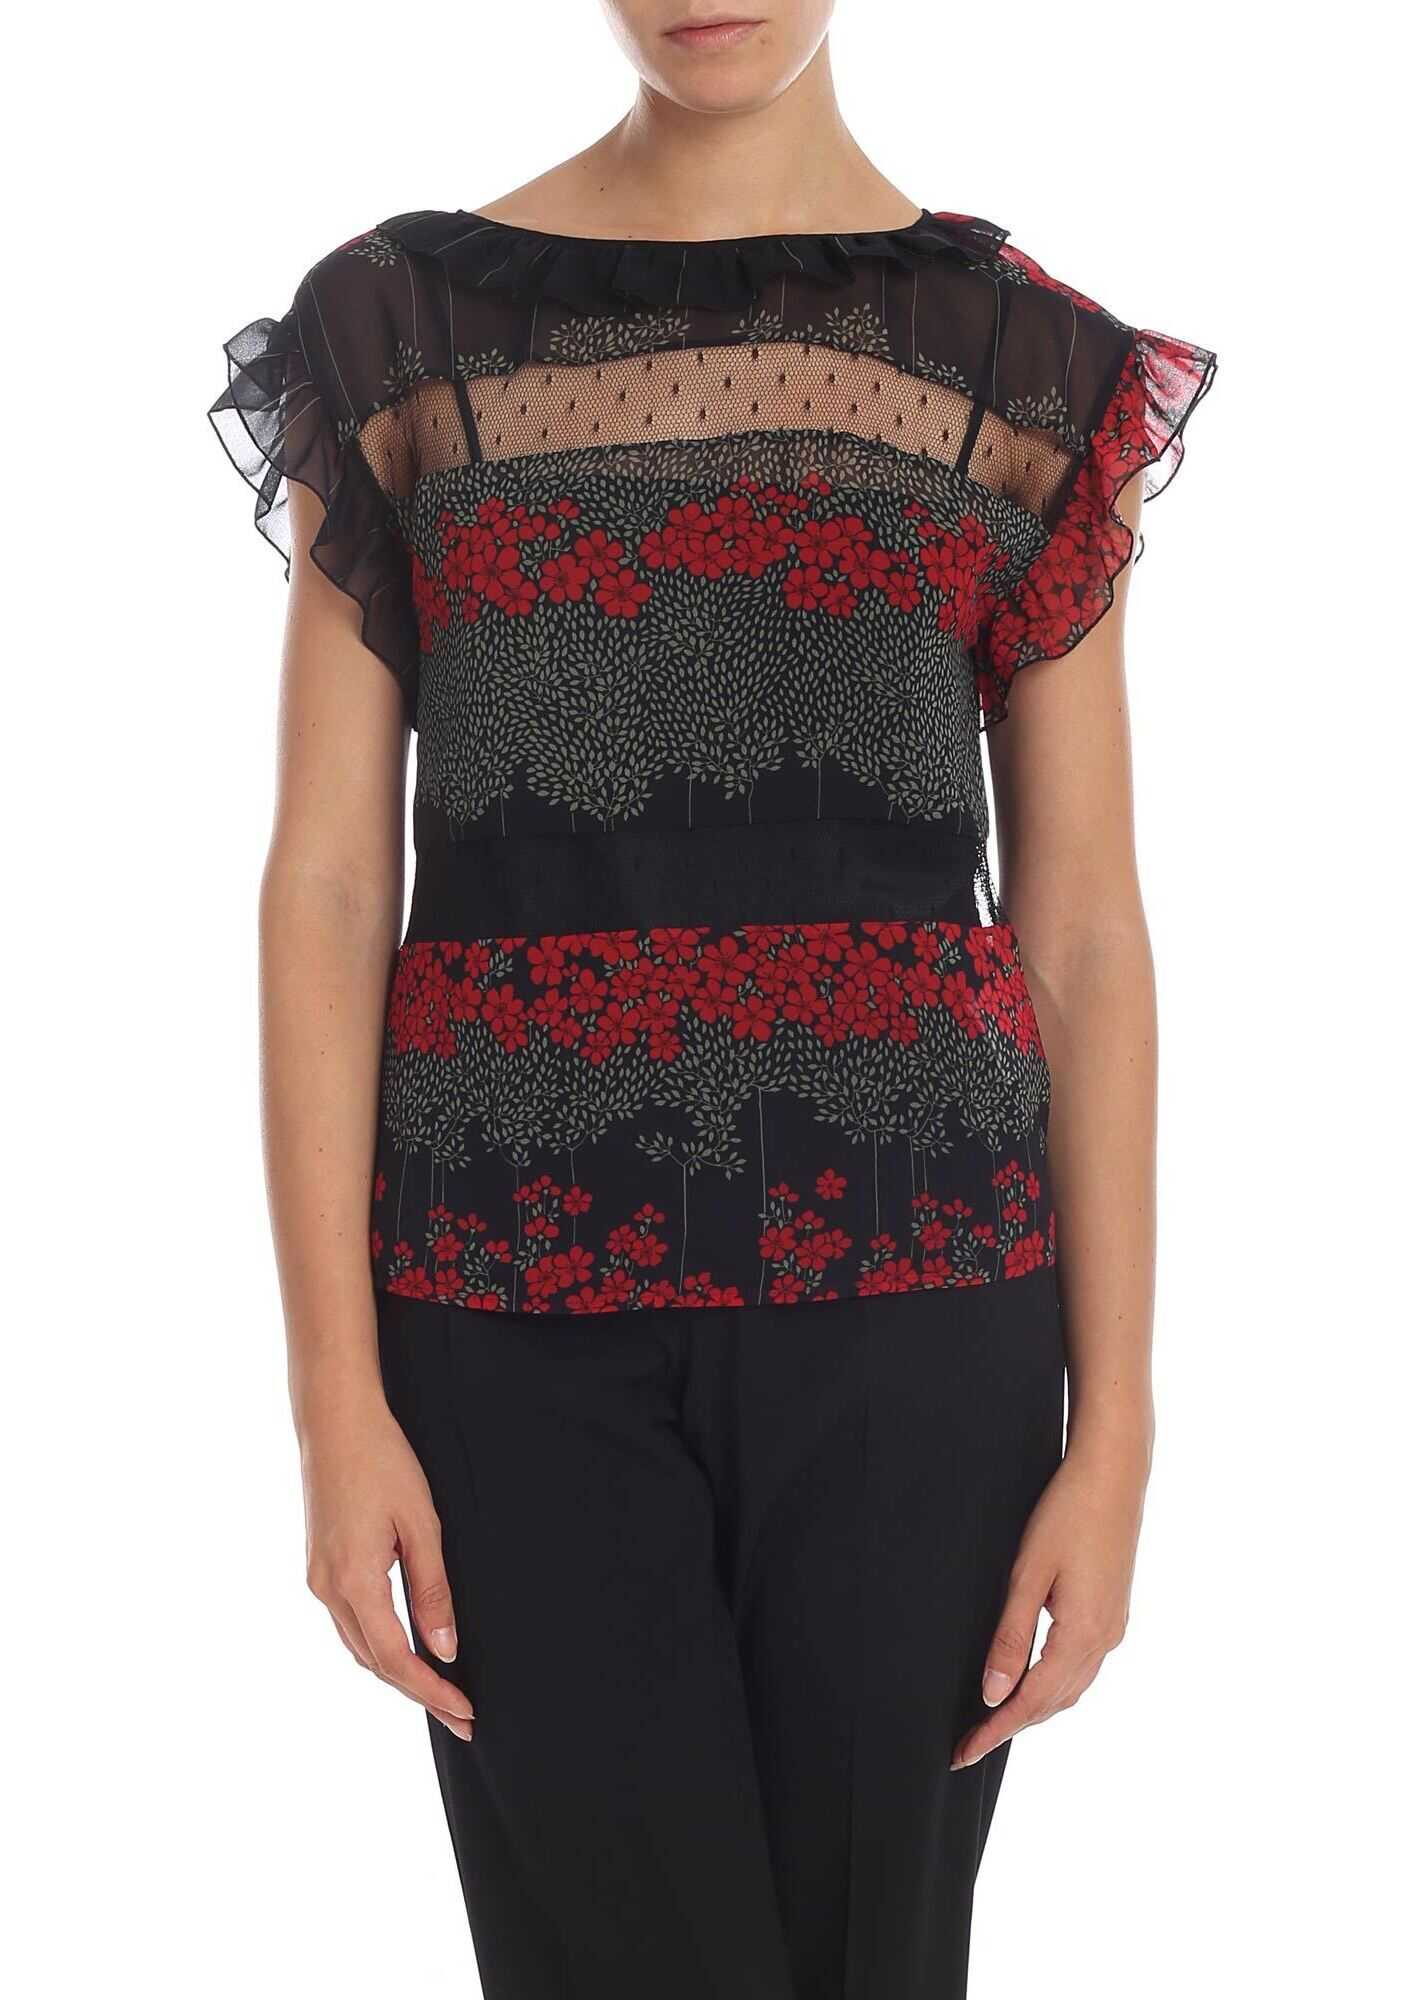 Black Top With Floral Print And Plumetis